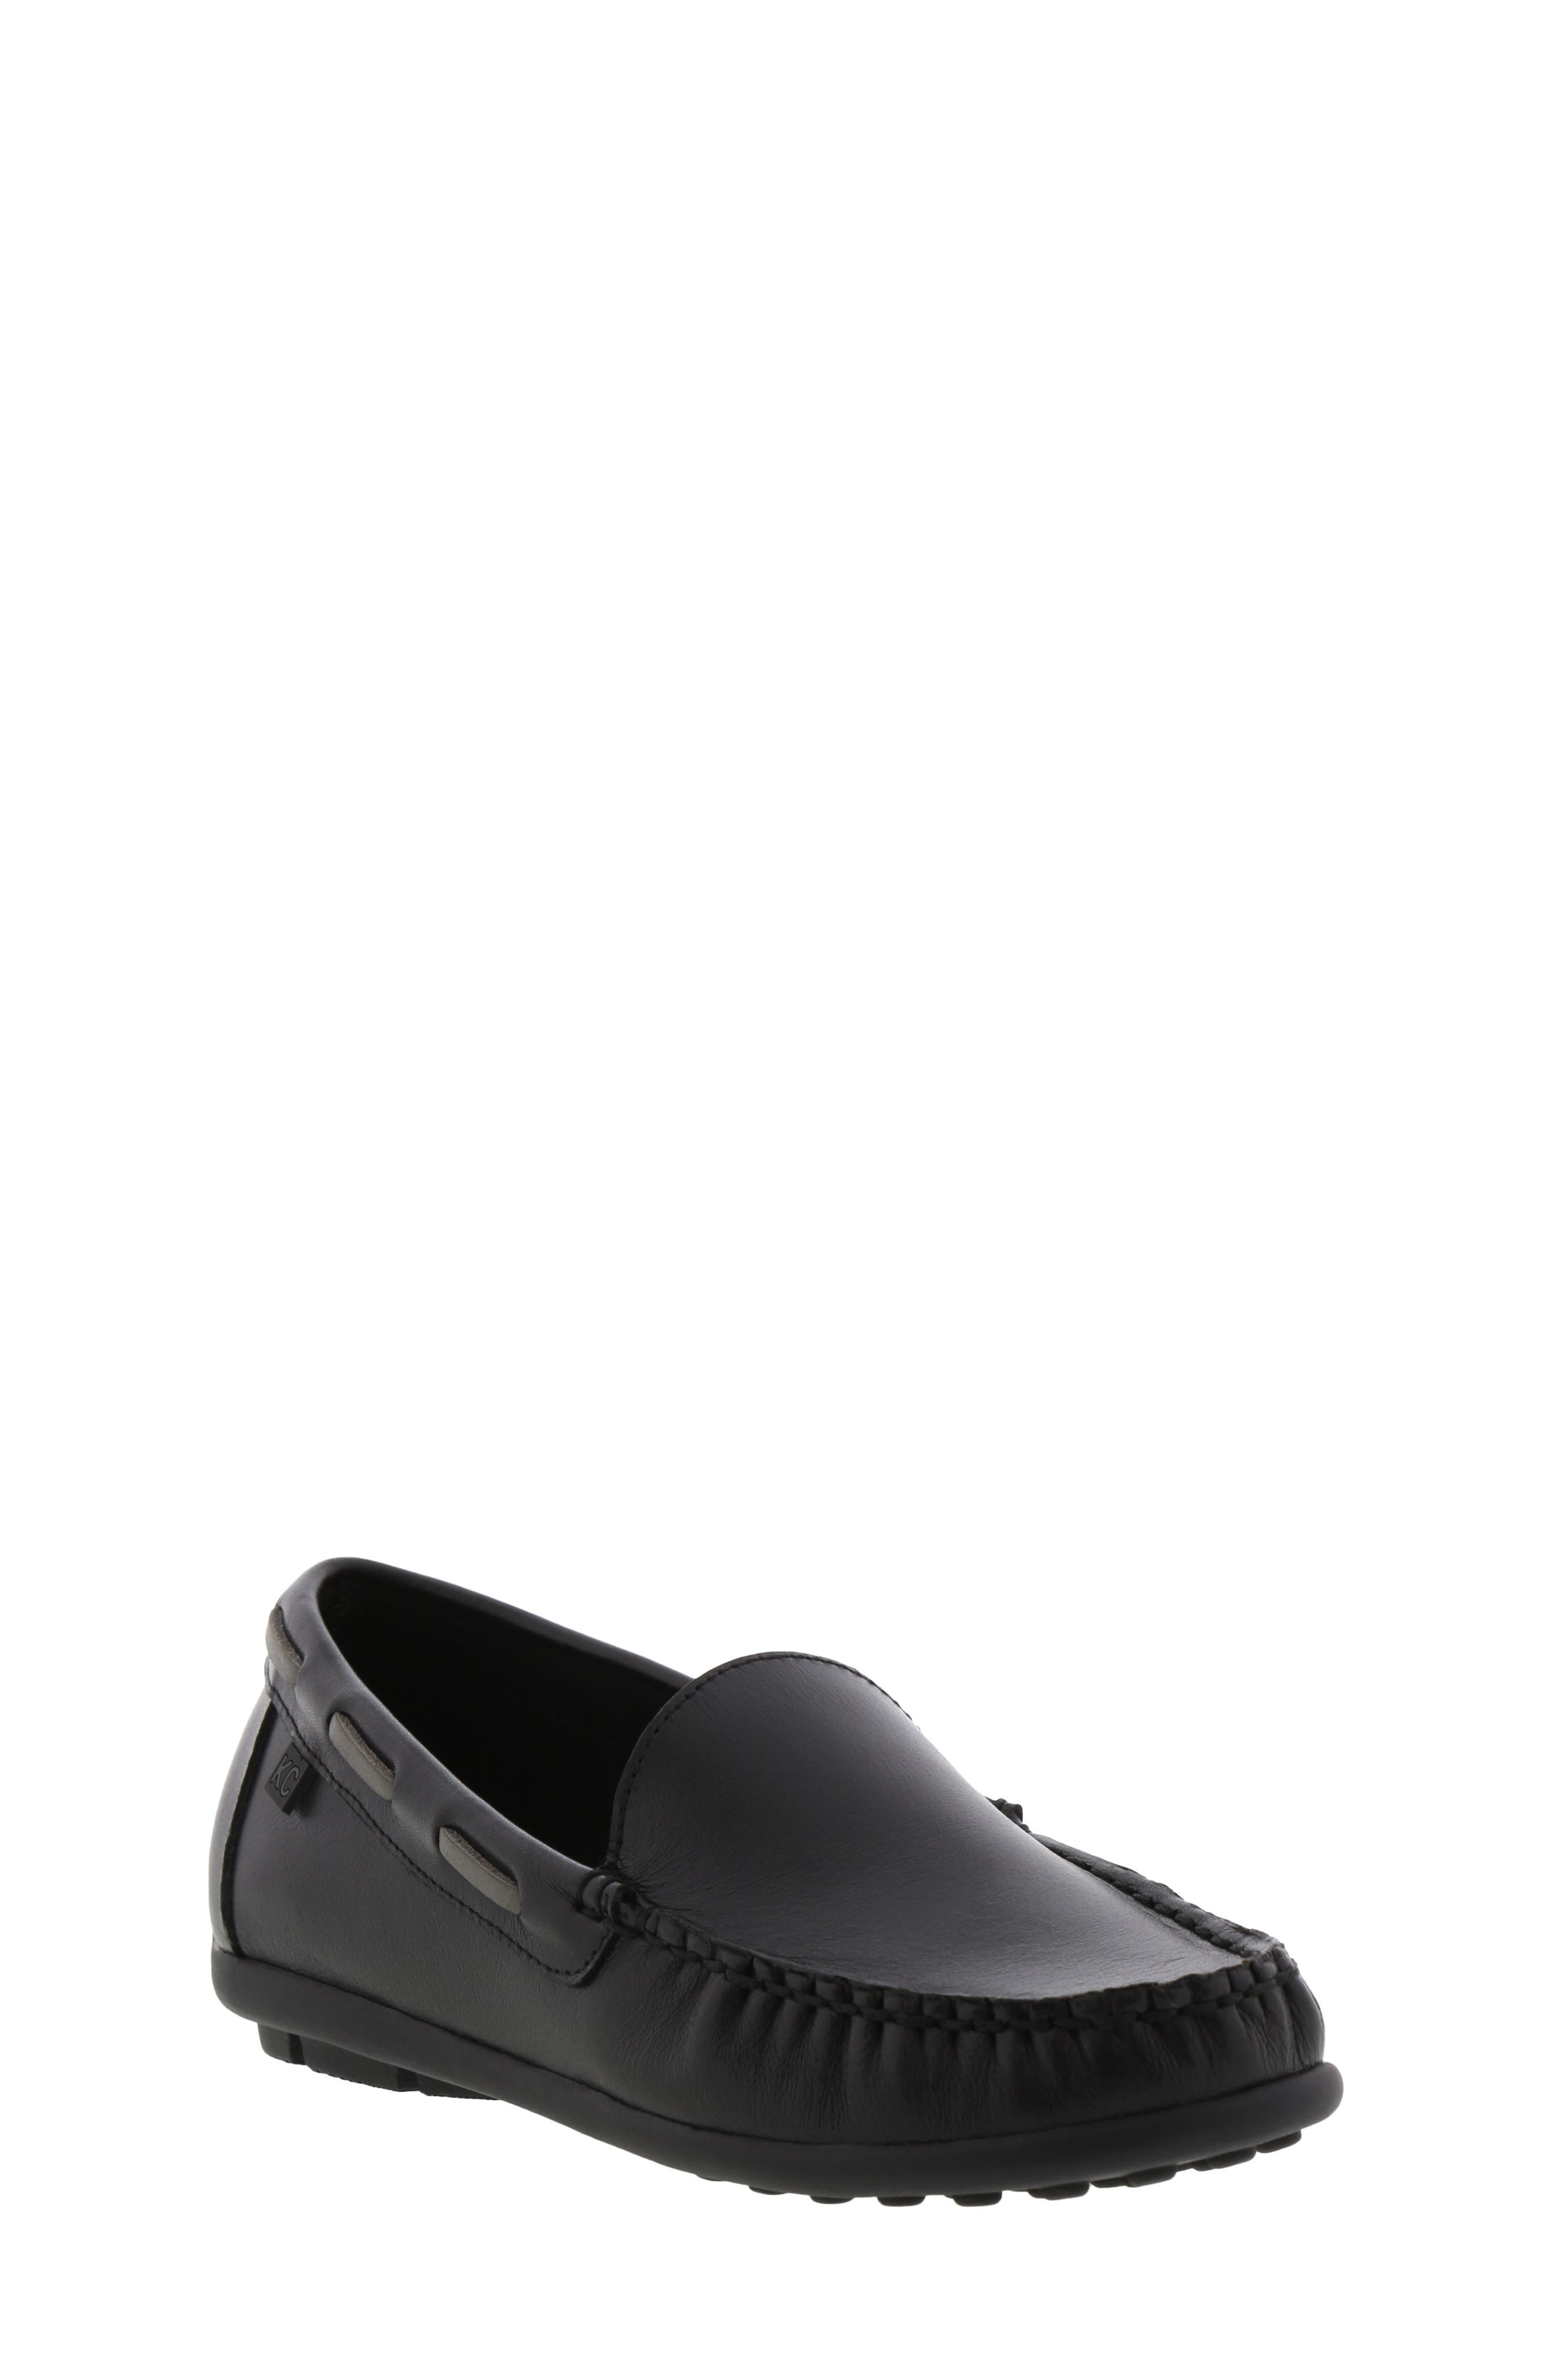 Helio Shift Driving Moccasin,                             Main thumbnail 1, color,                             BLACK SMOOTH